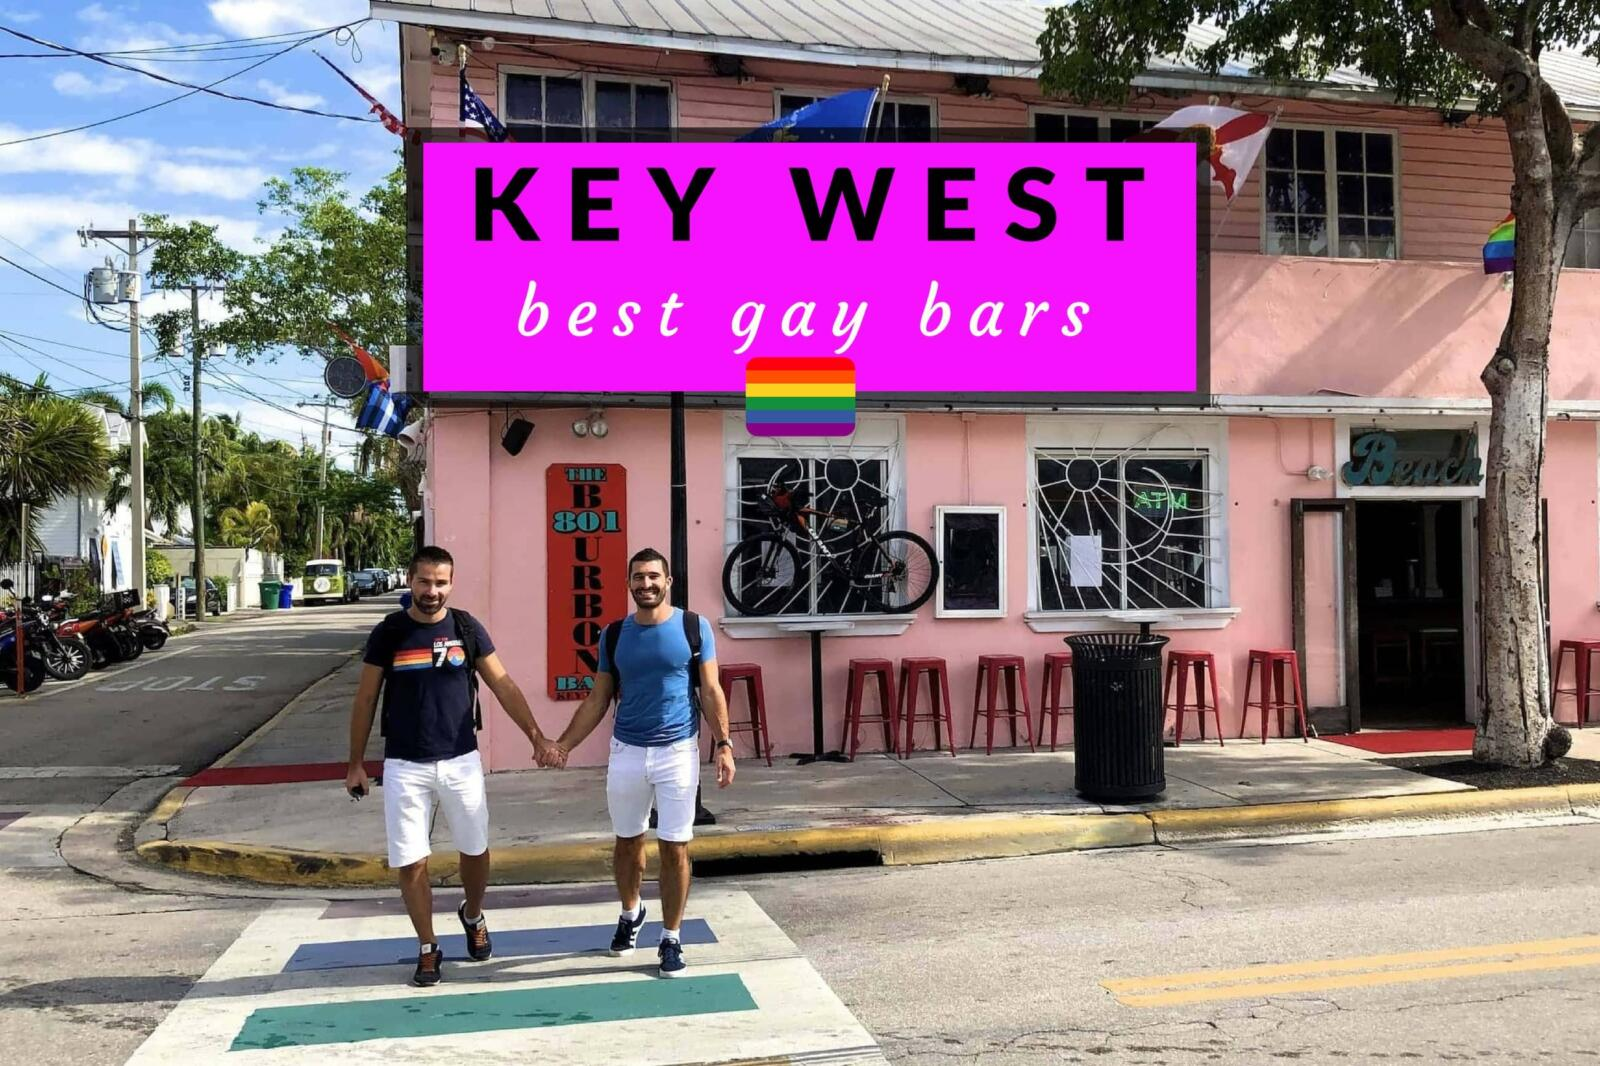 Best gay bars in Key West